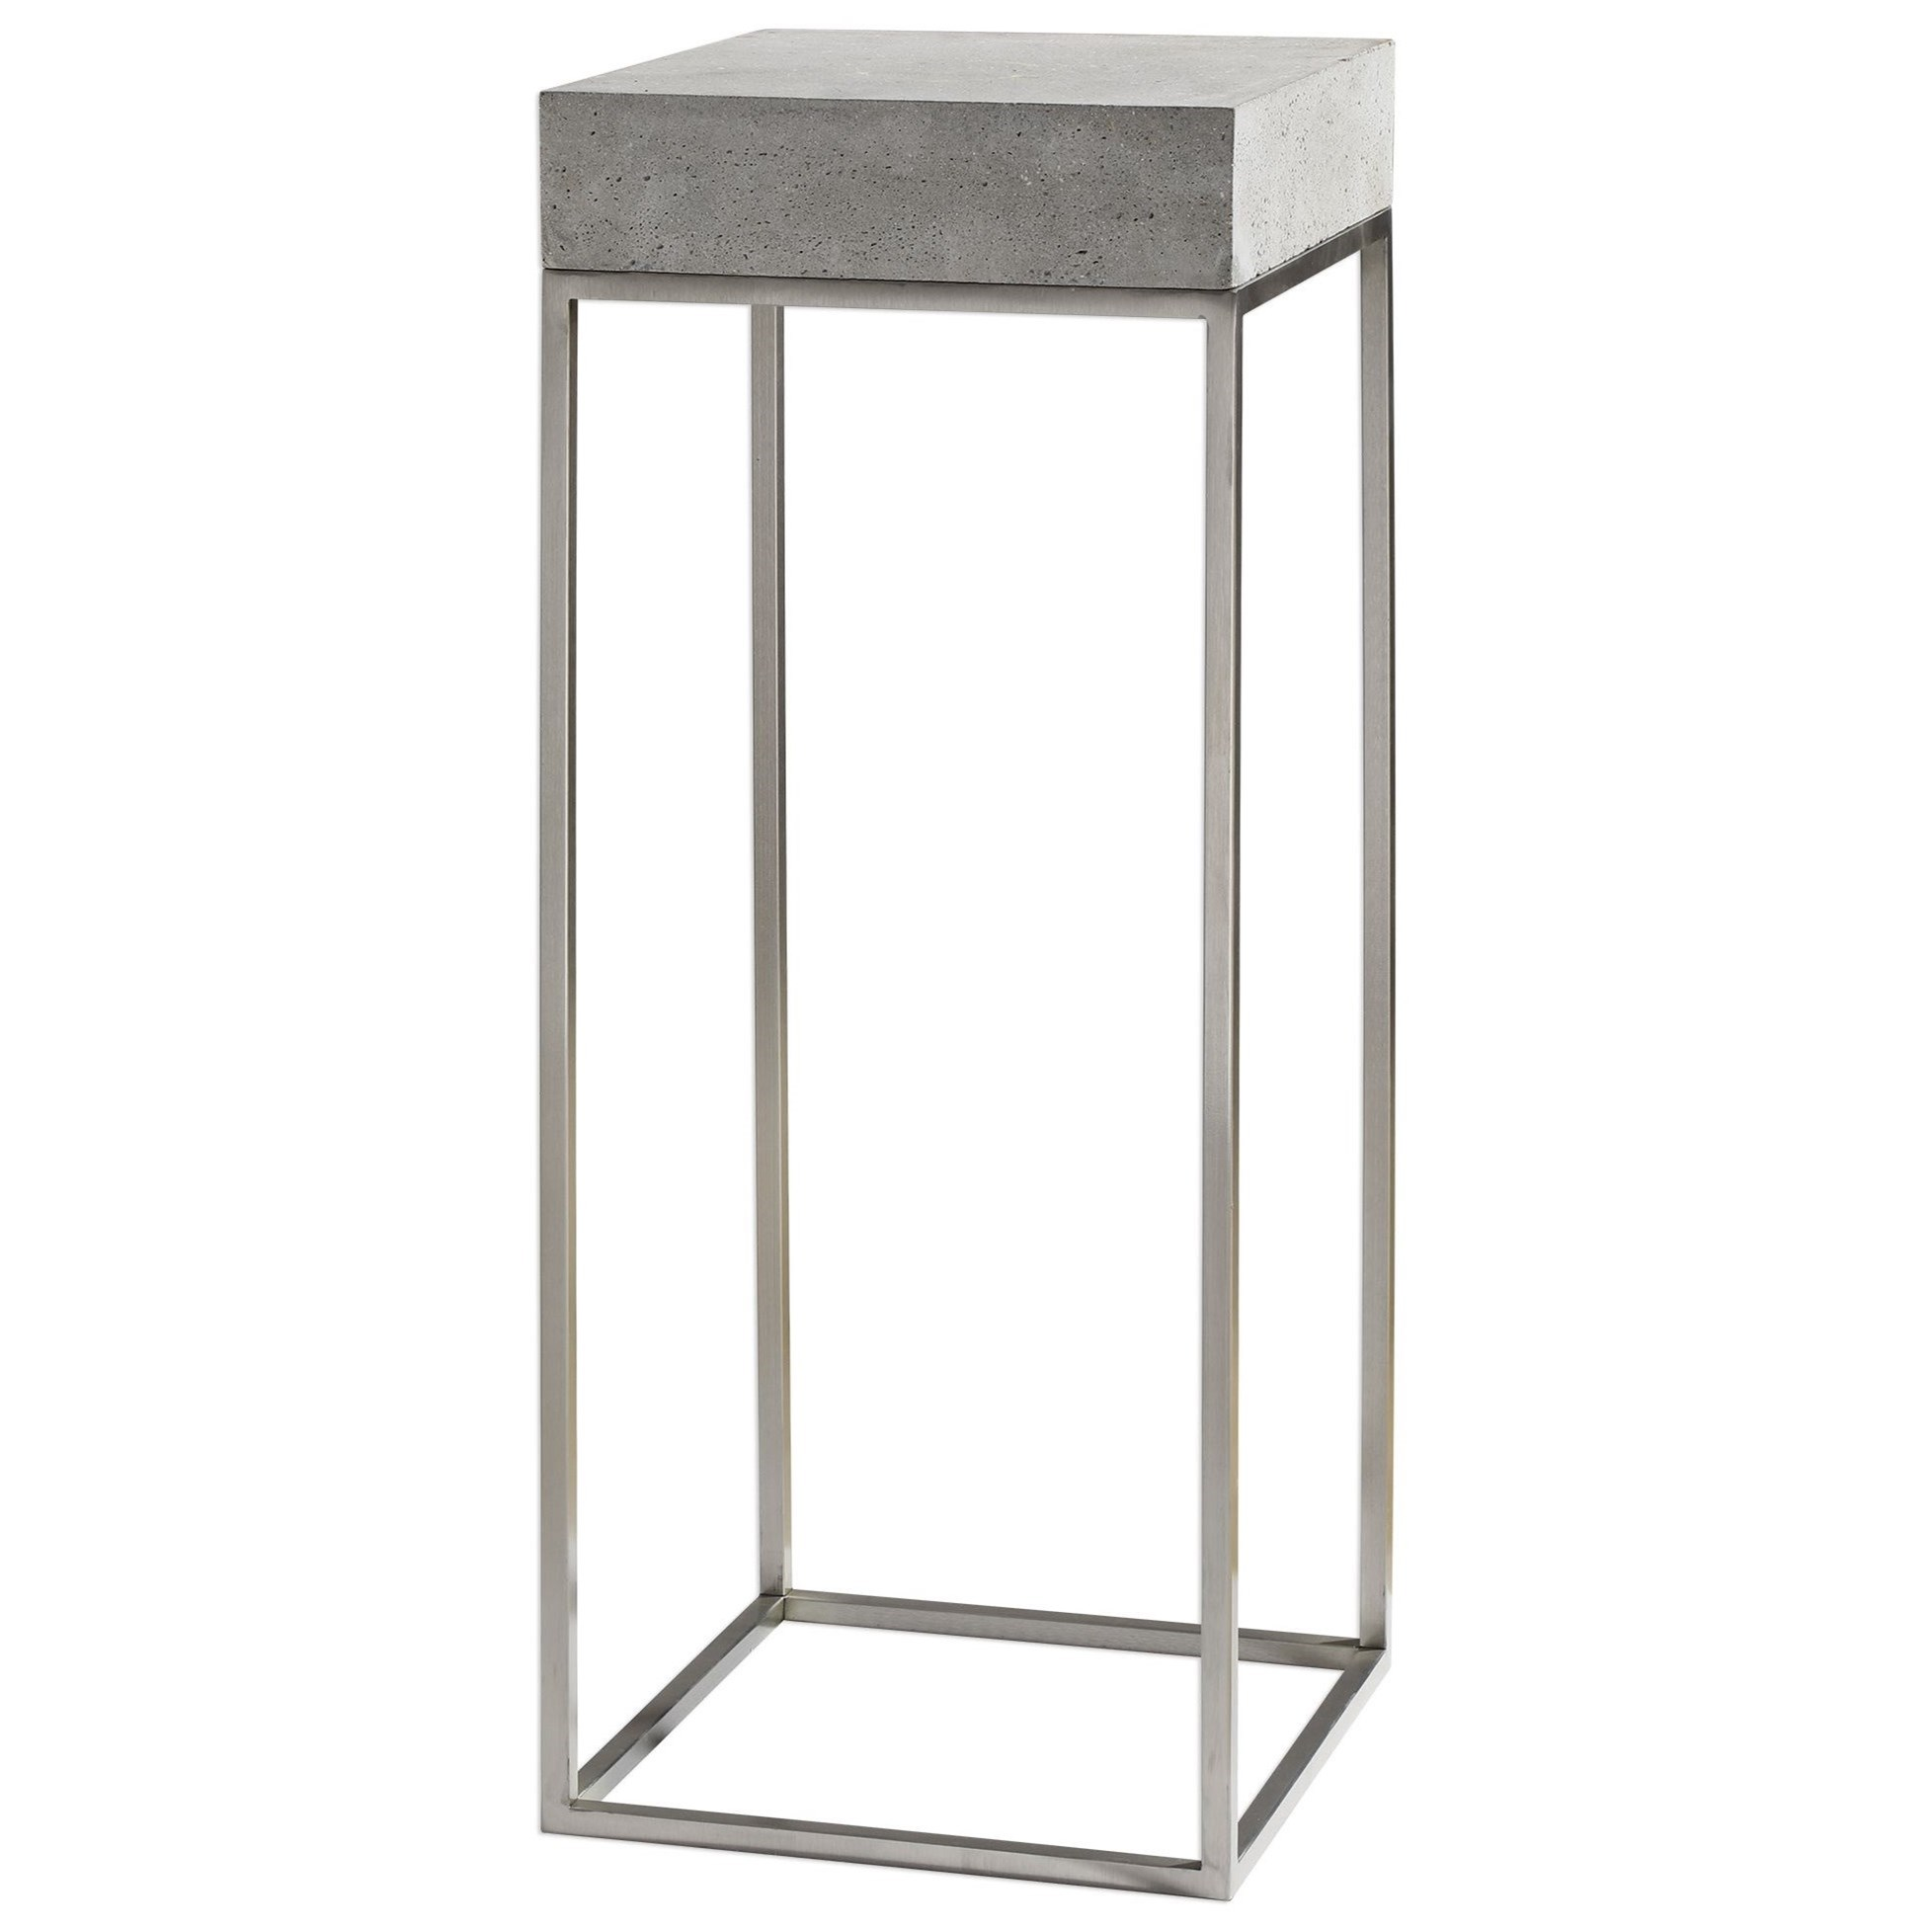 Accent Furniture - Occasional Tables Jude Industrial Modern Plant Stand by Uttermost at Factory Direct Furniture